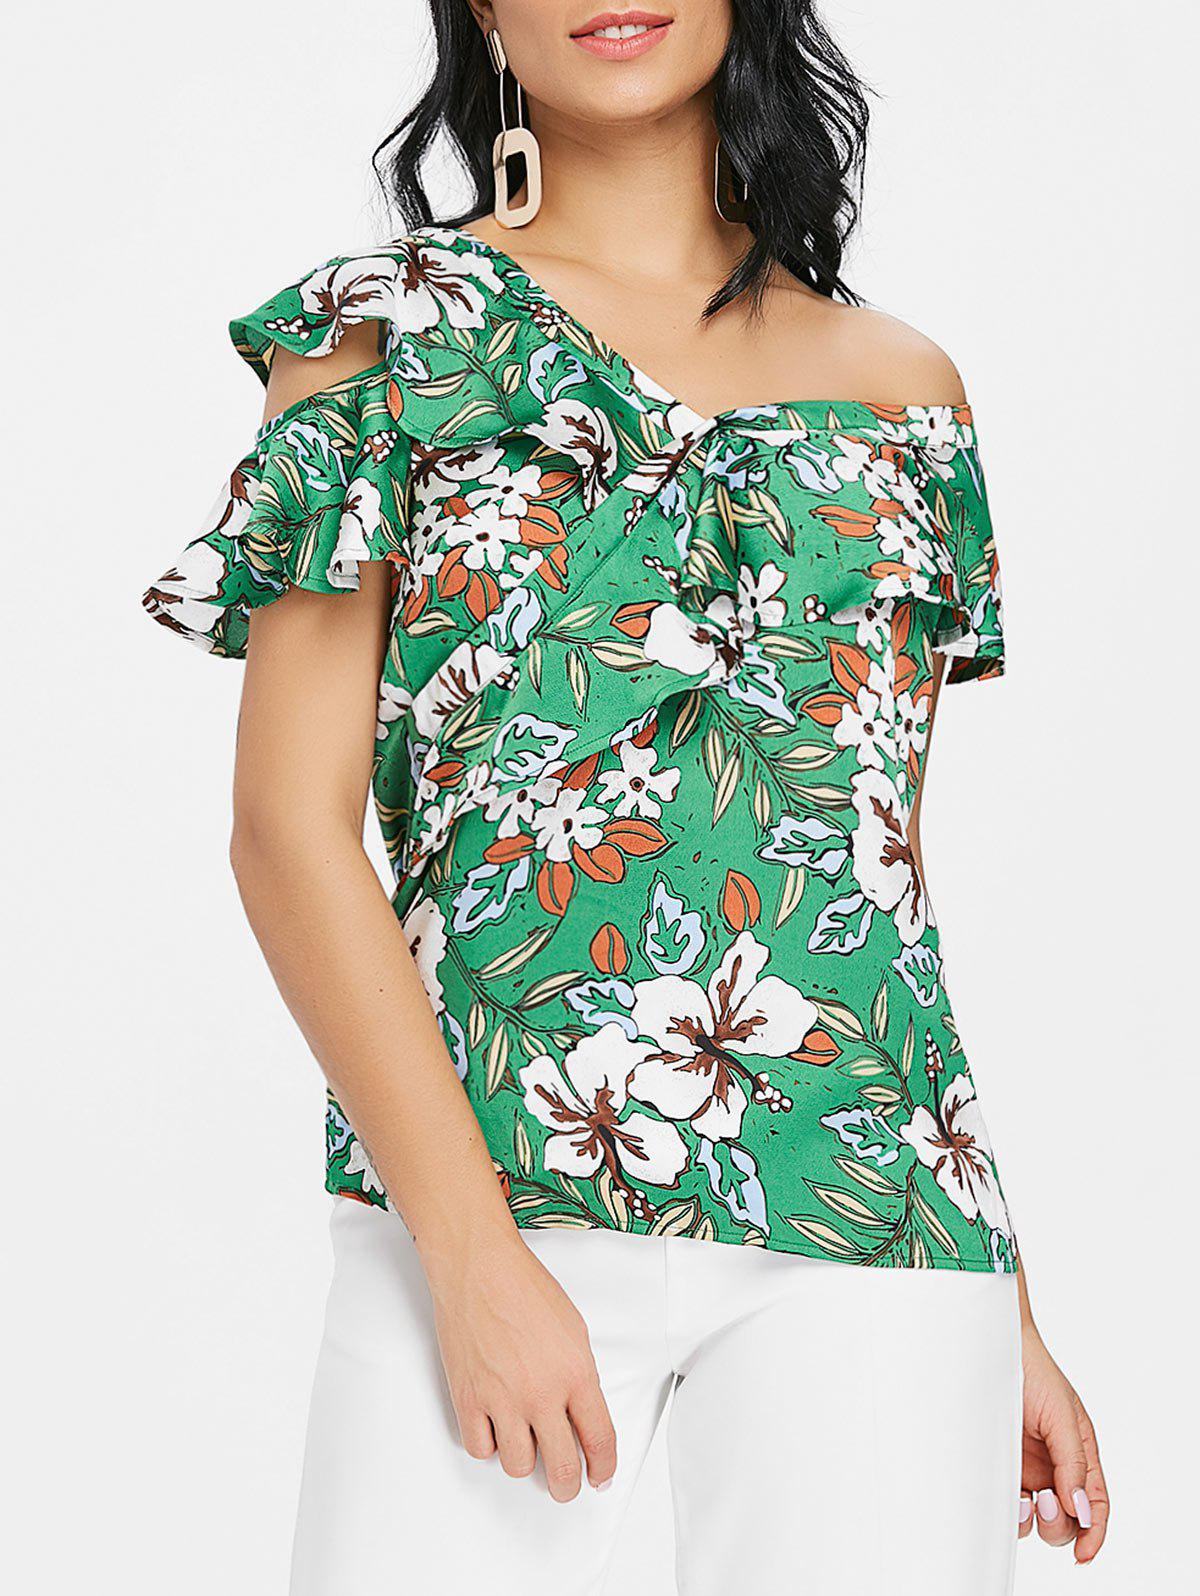 New Ruffle Skew Neck Floral Print Blouse